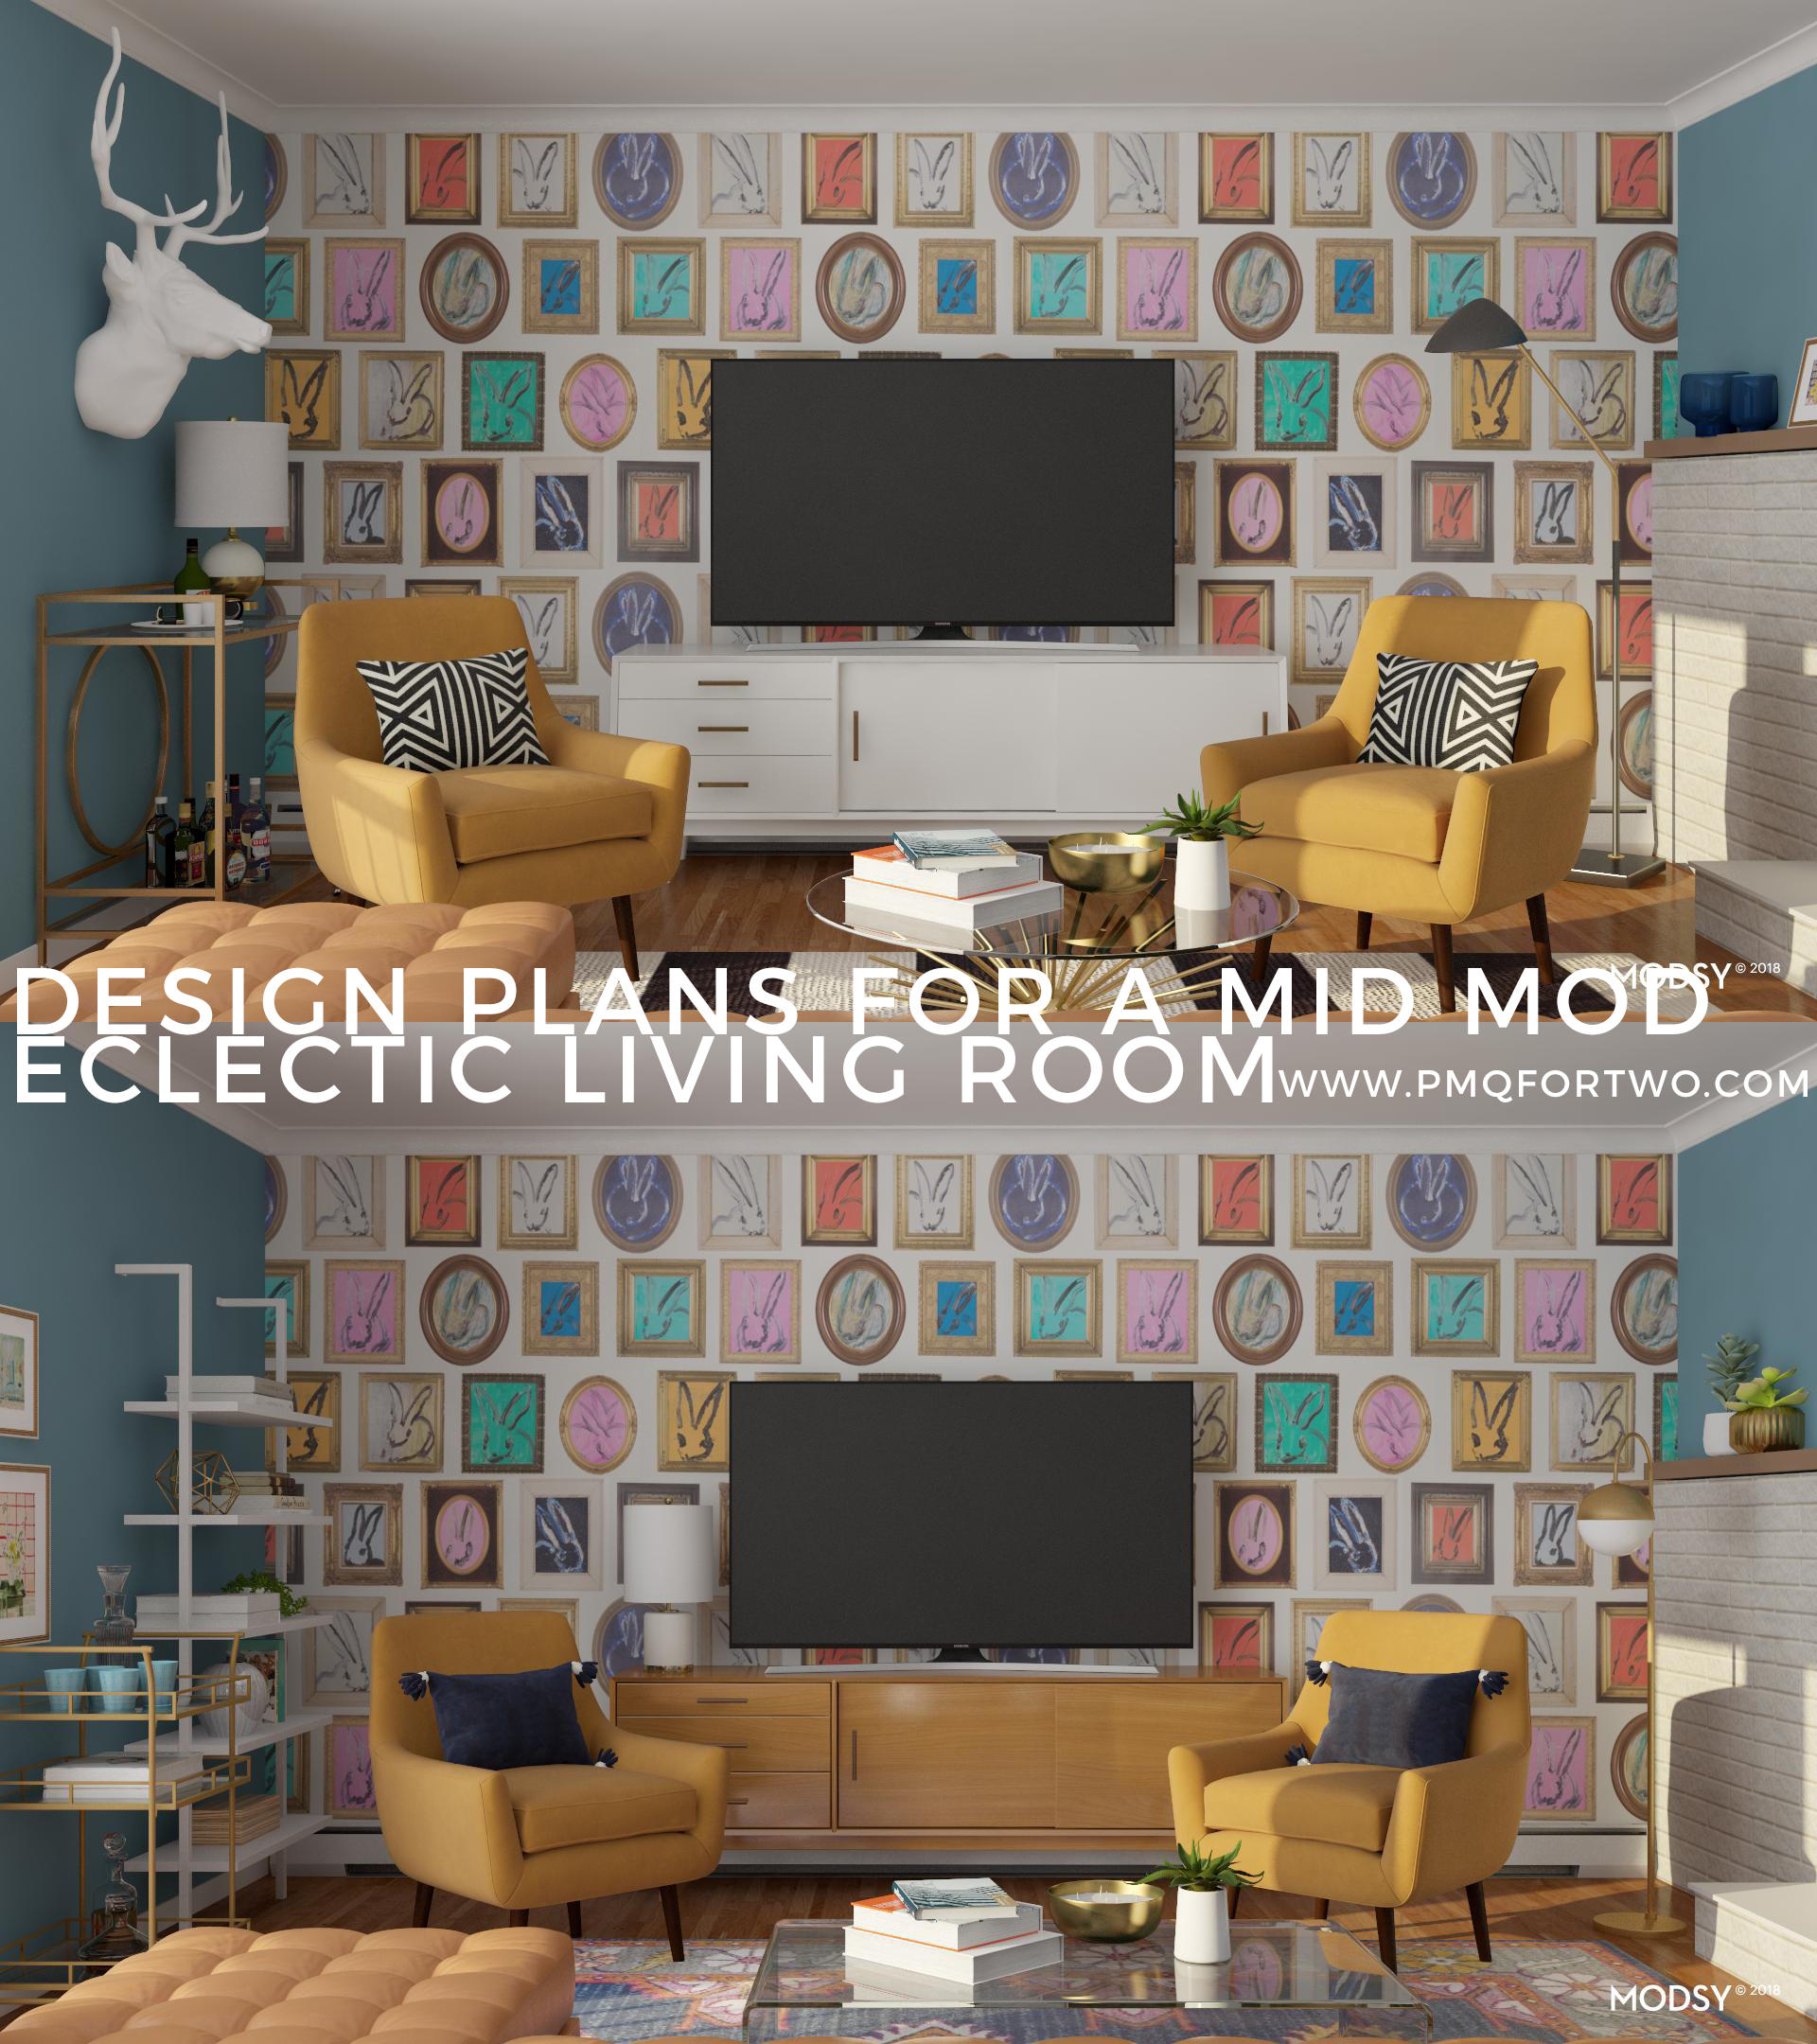 design plans for a mid mod eclectic living room pmq for two